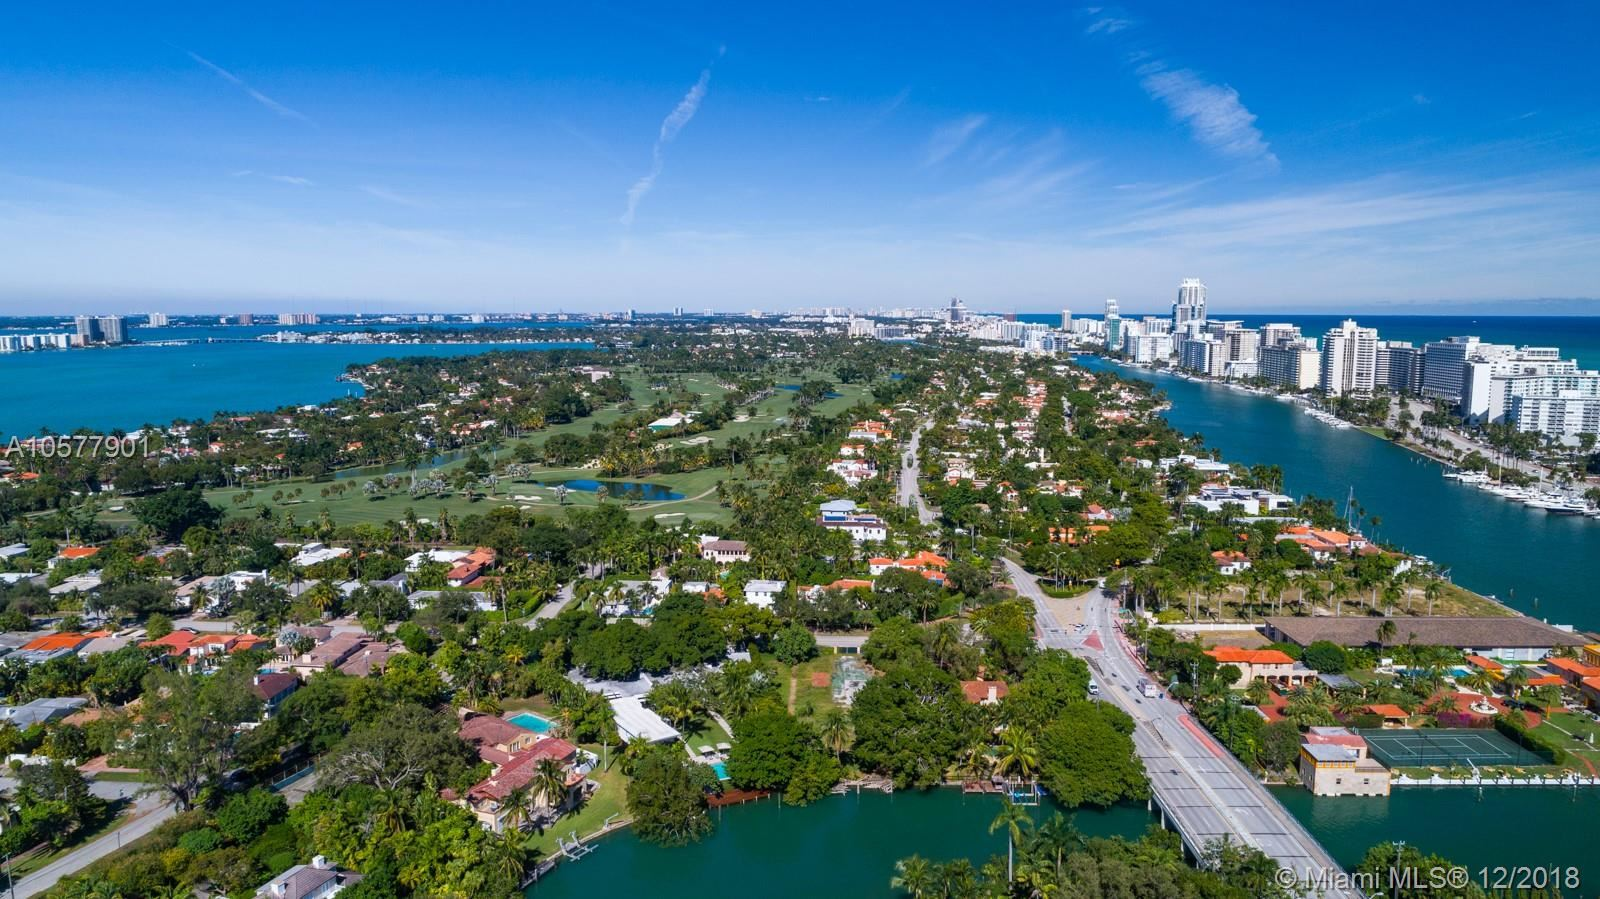 Photo 36 of Listing MLS a10577901 in 5045 Lakeview Drive Miami Beach FL 33140